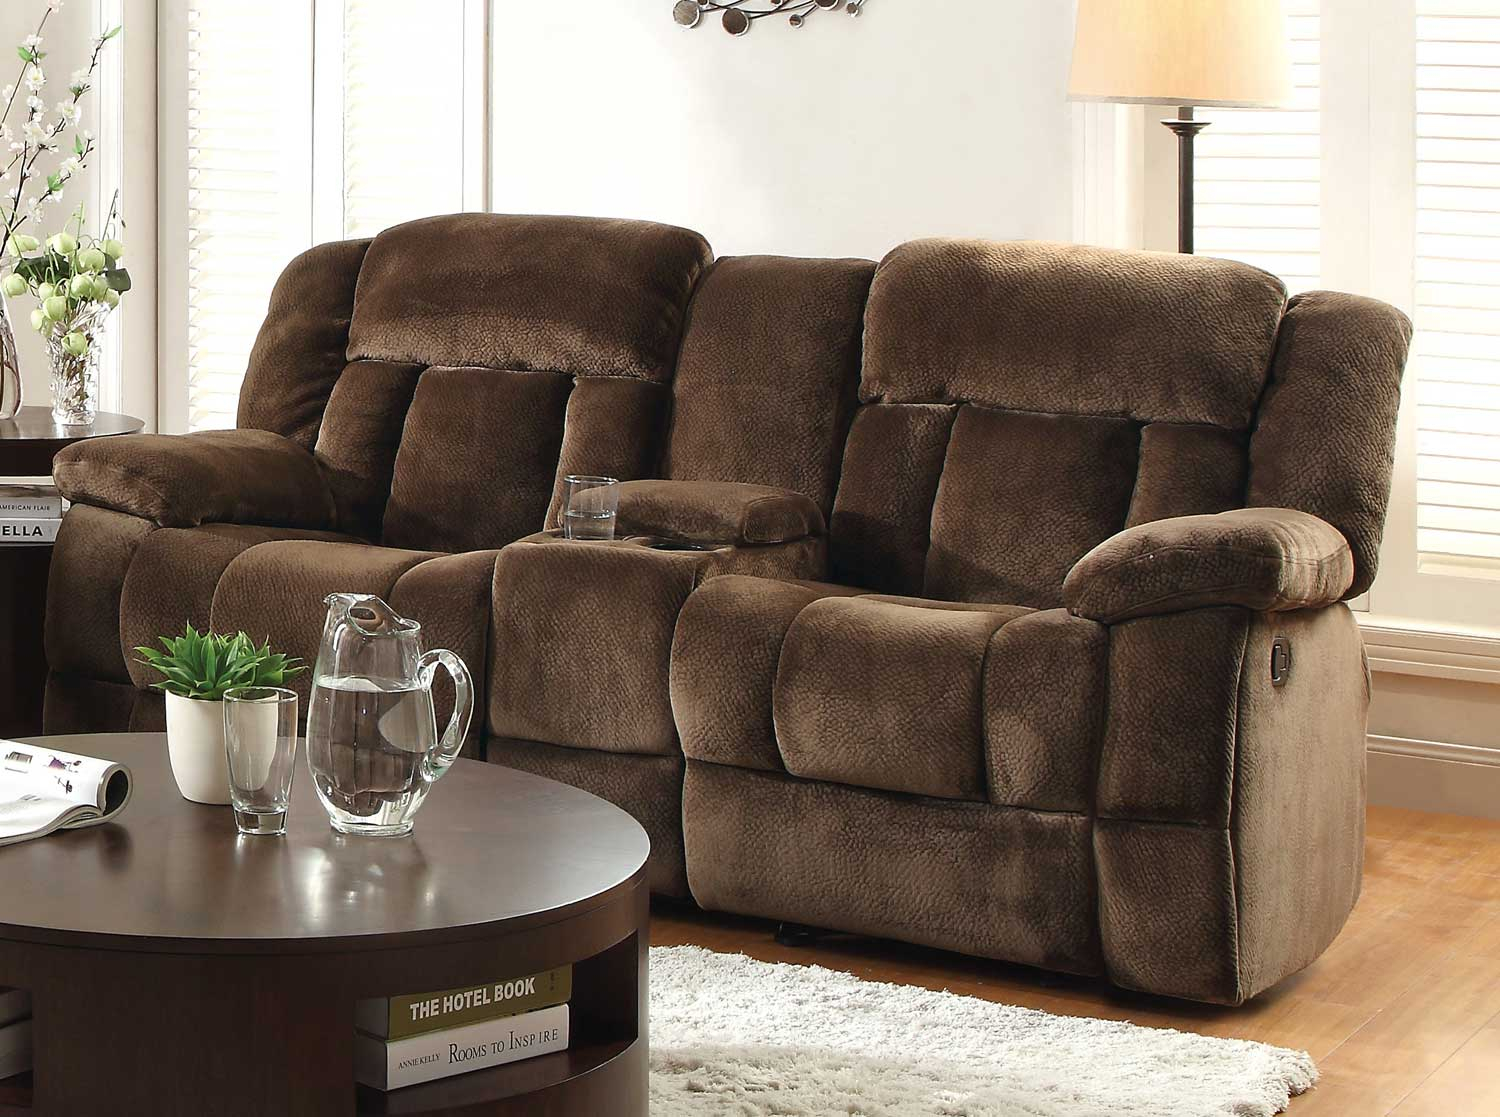 Homelegance Laurelton Chocolate Double Glider Reclining Loveseat Throughout Double Glider Loveseats (Image 12 of 25)